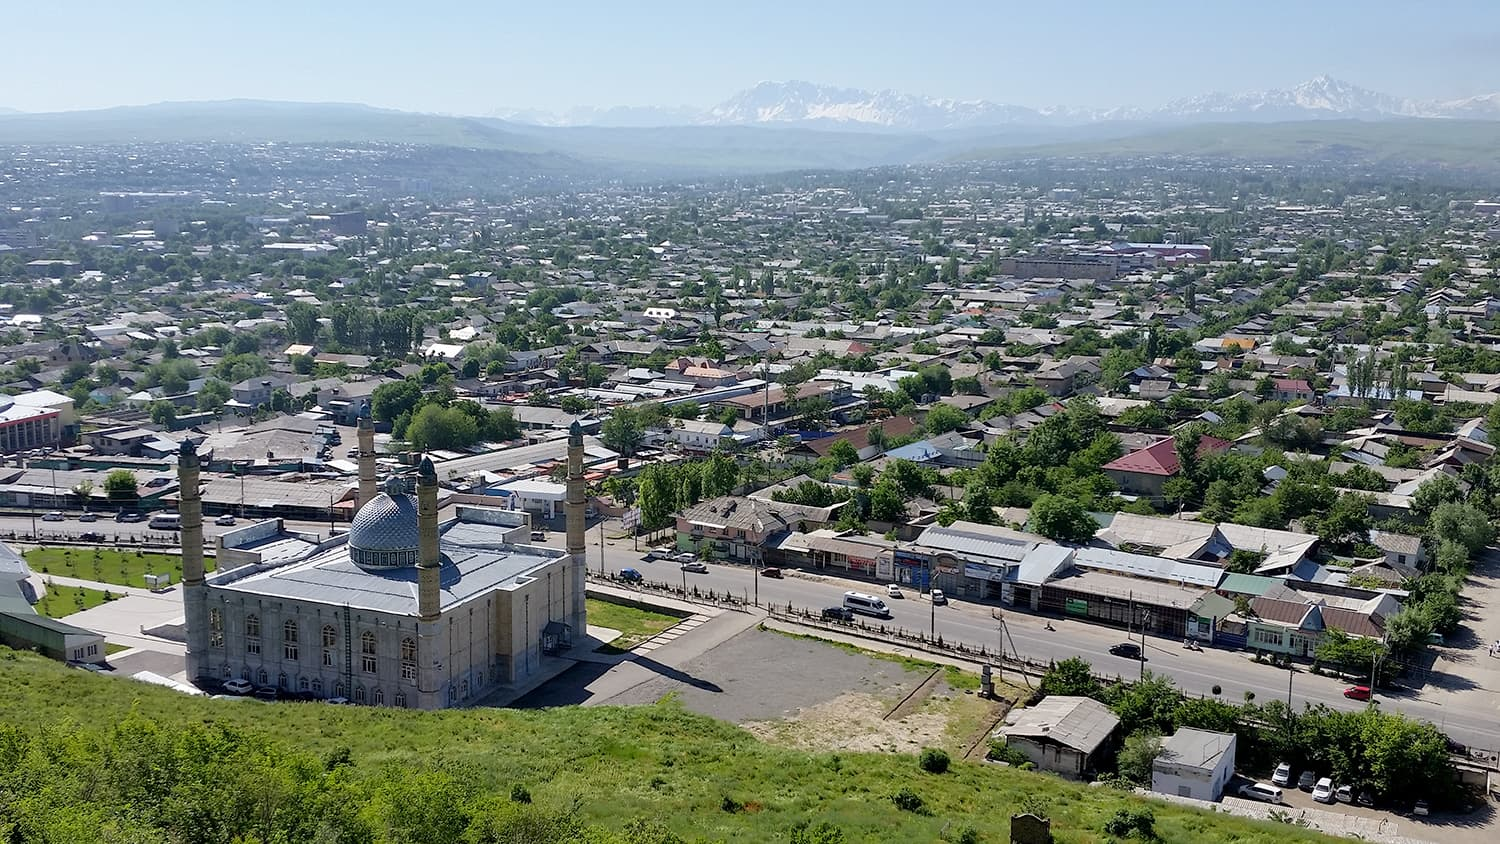 View of Osh in Kyrgyzstan.